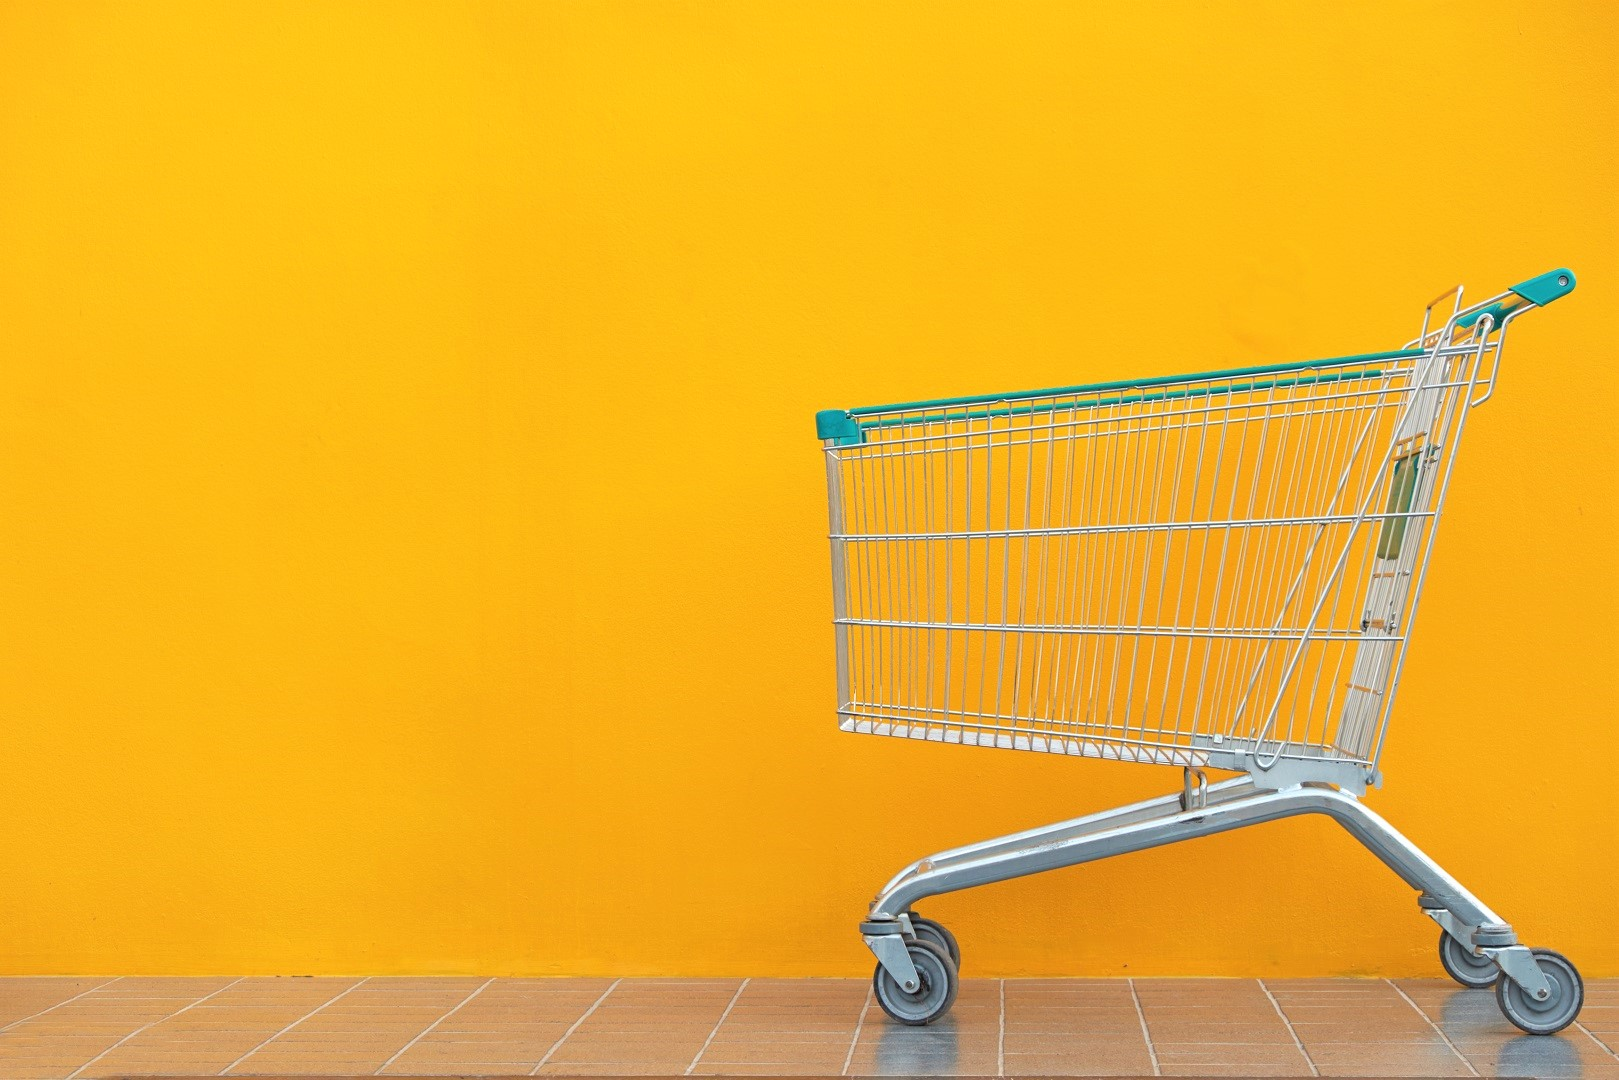 Shopping Cart Yellow Wall Background